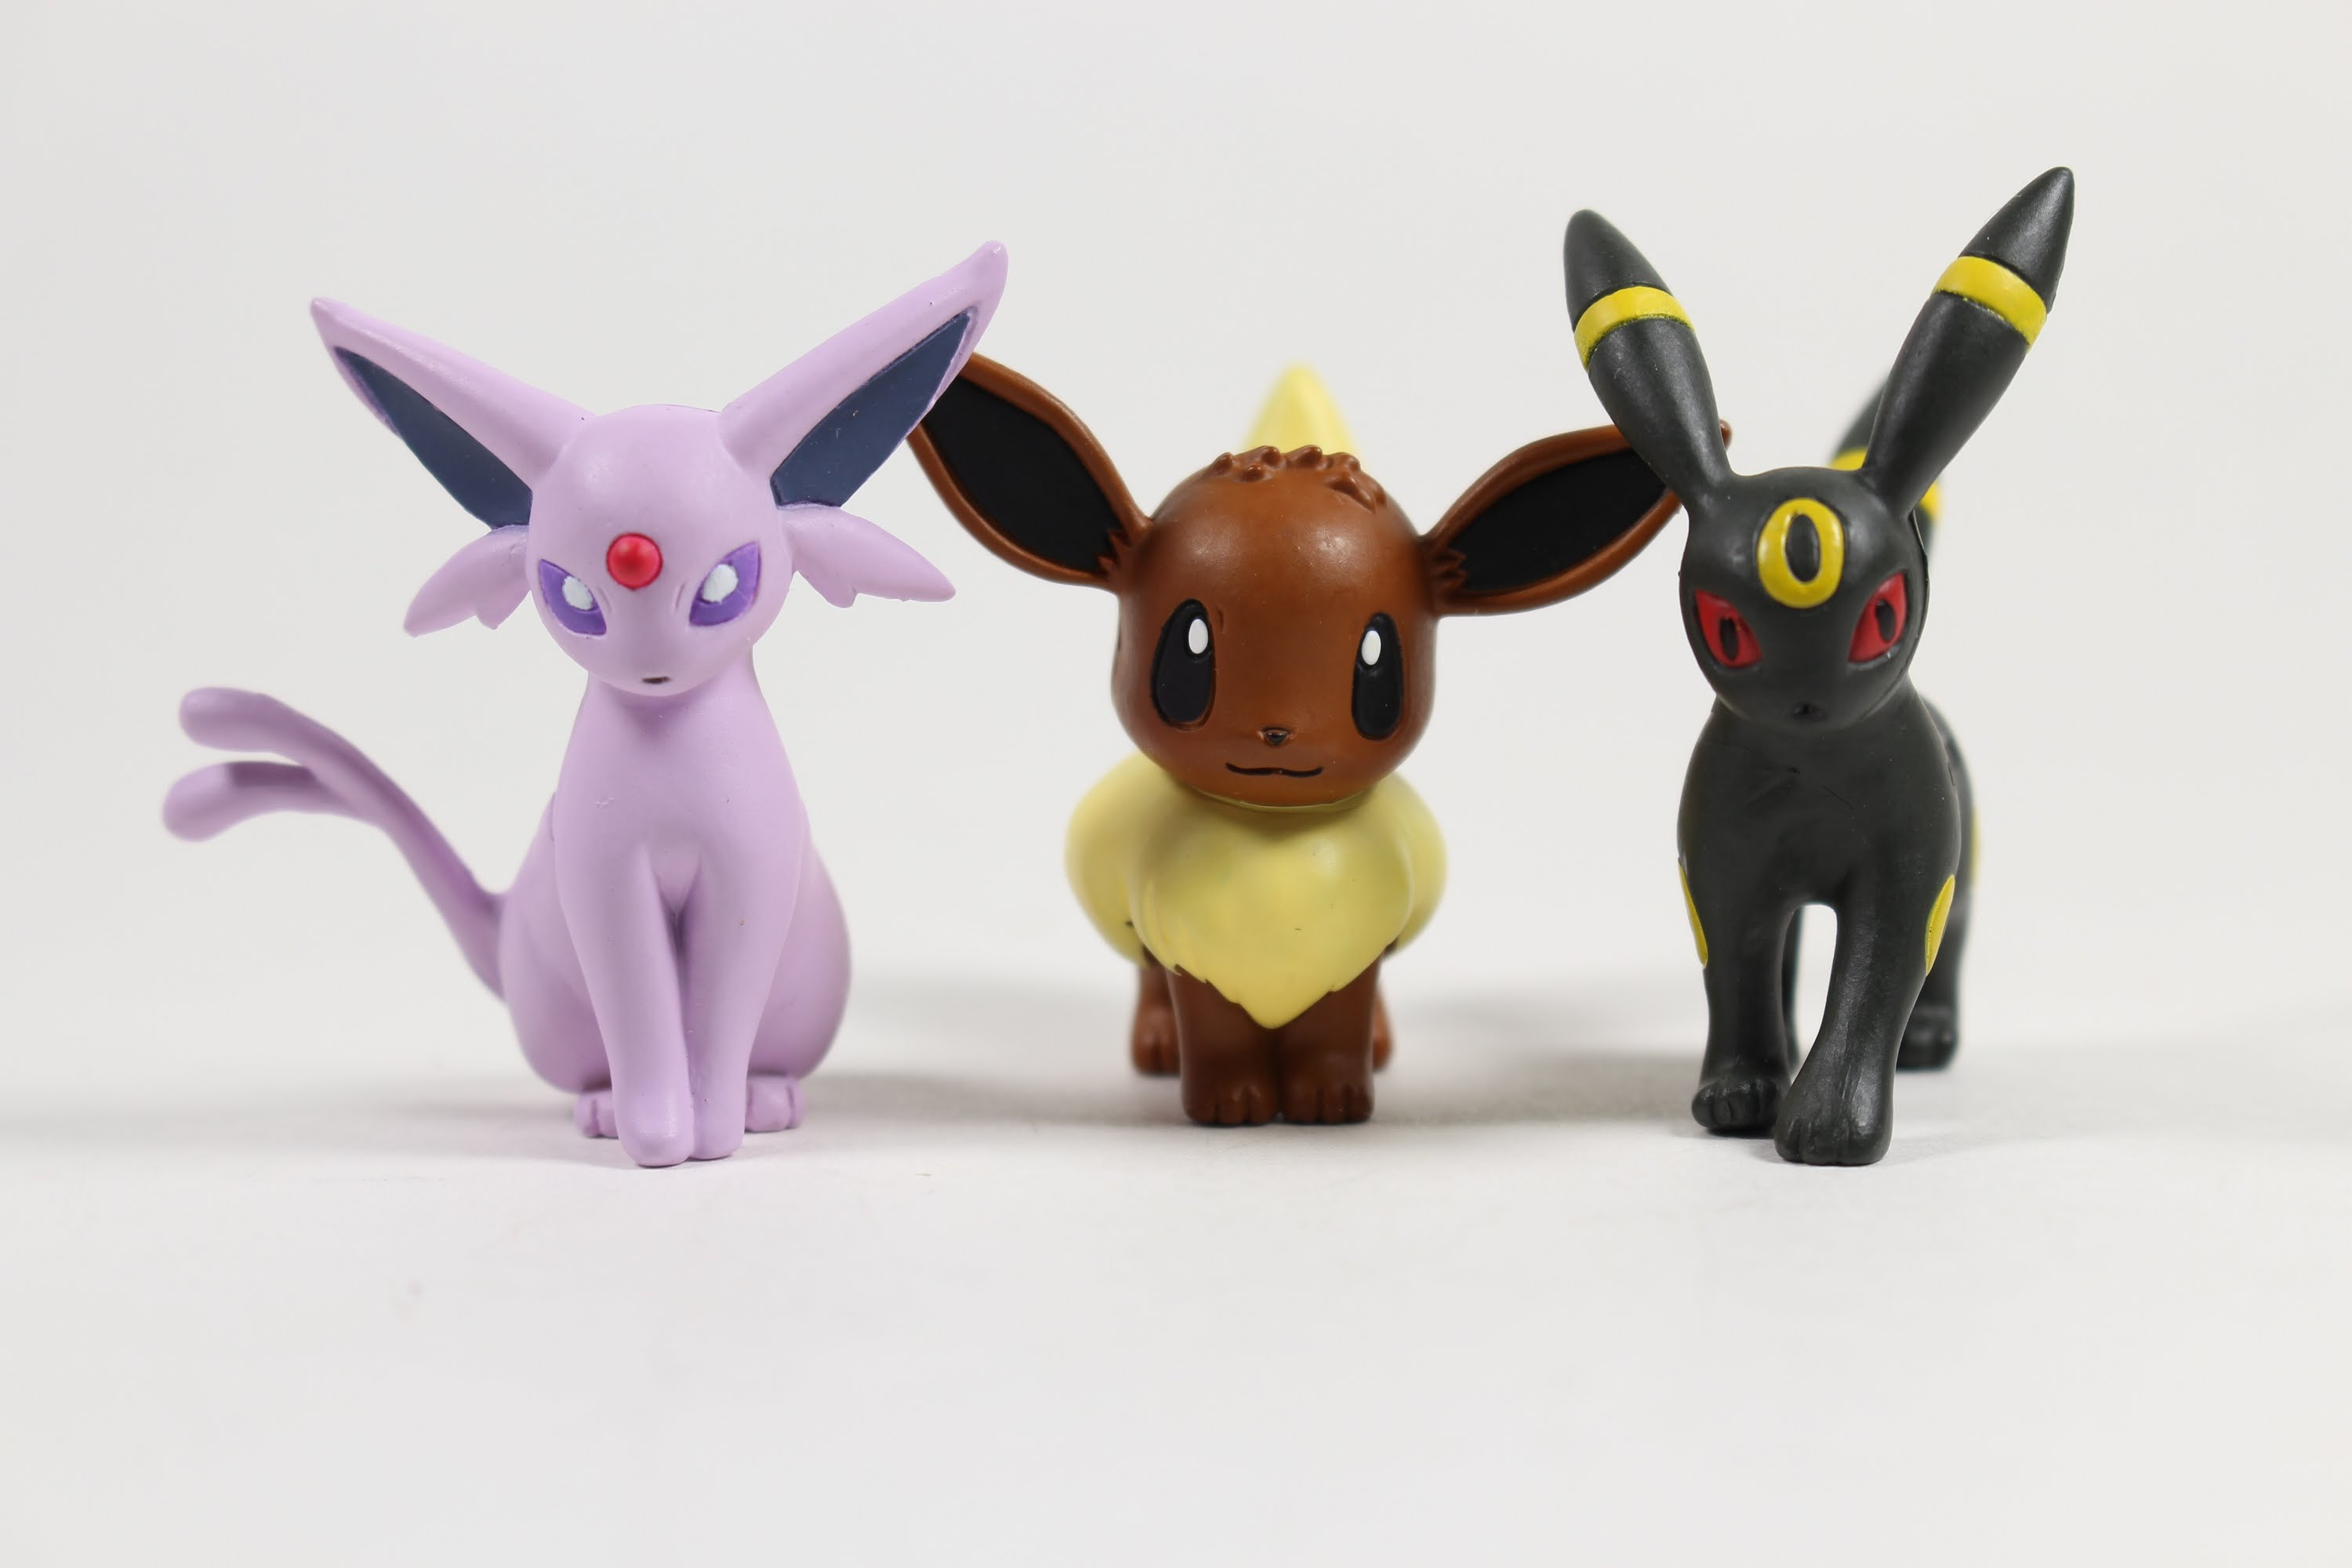 Guide Pokemon Go Has A New Eevee Evolution Trick For Umbreon And Espeon